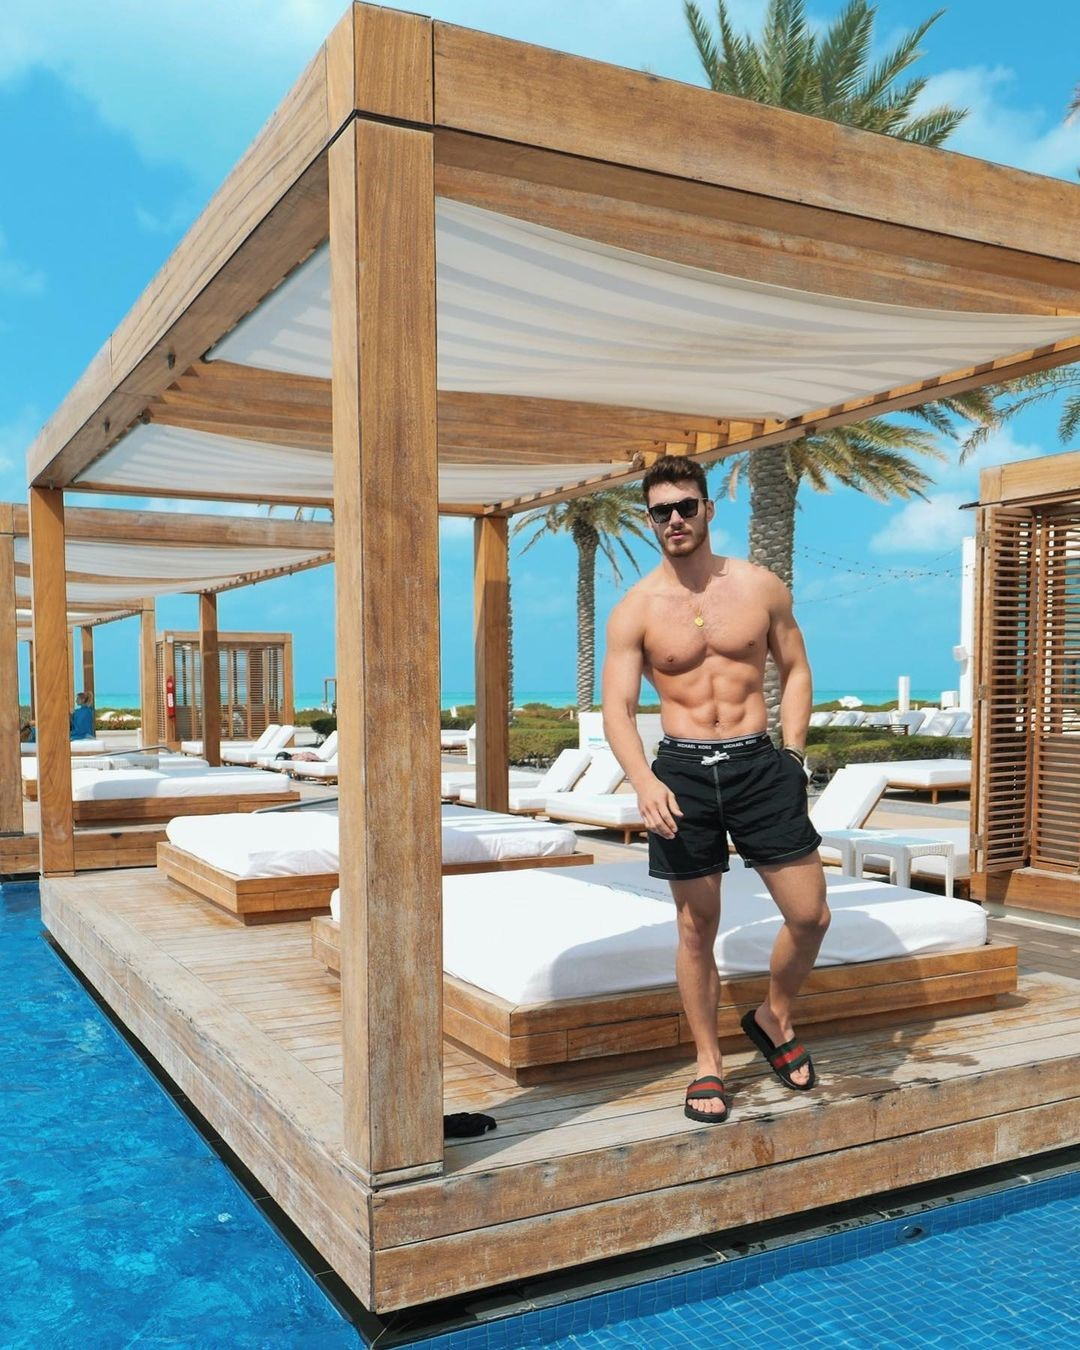 luxurious-places-outdoor-beds-michael-yerger-beautiful-pool-hunk